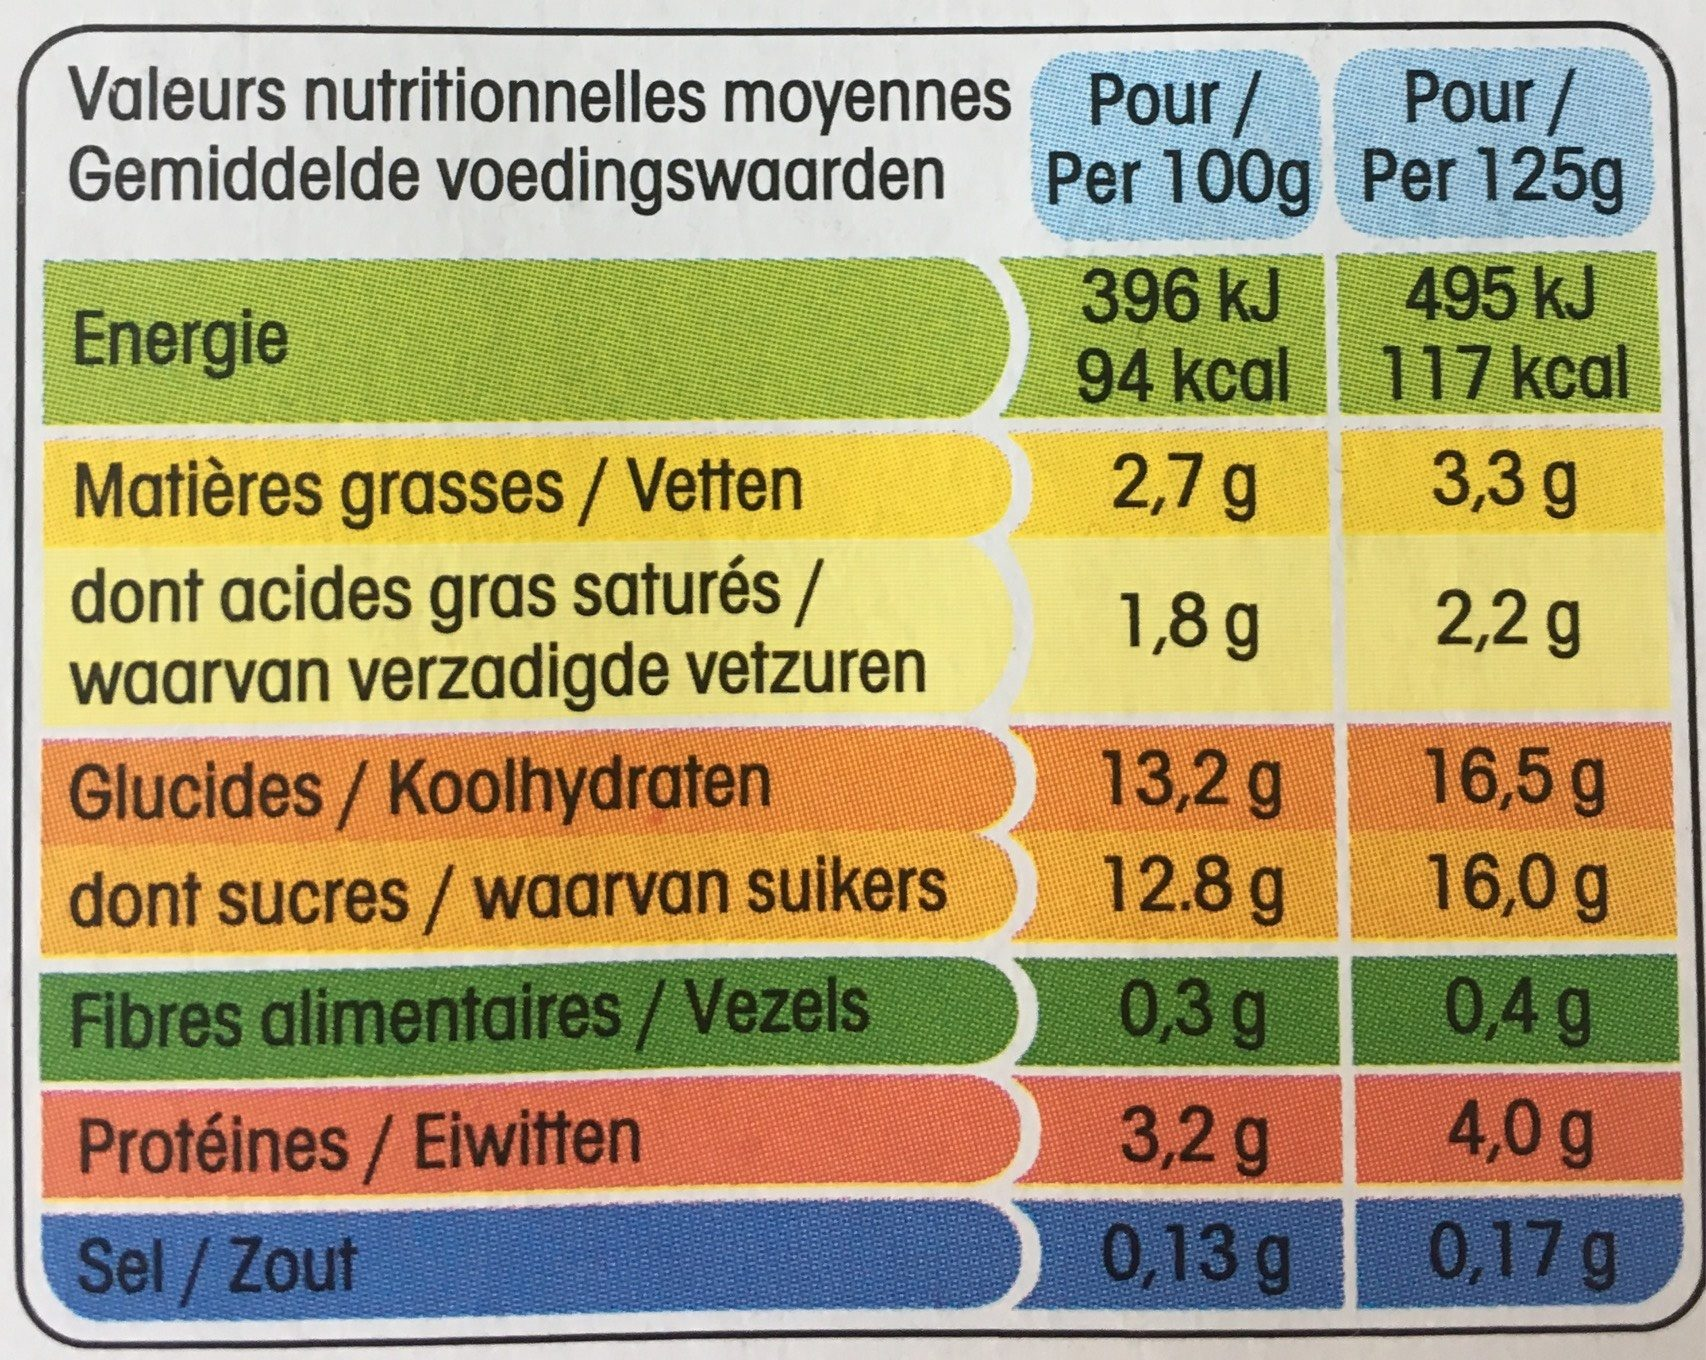 Panier de Yoplait - Nutrition facts - fr